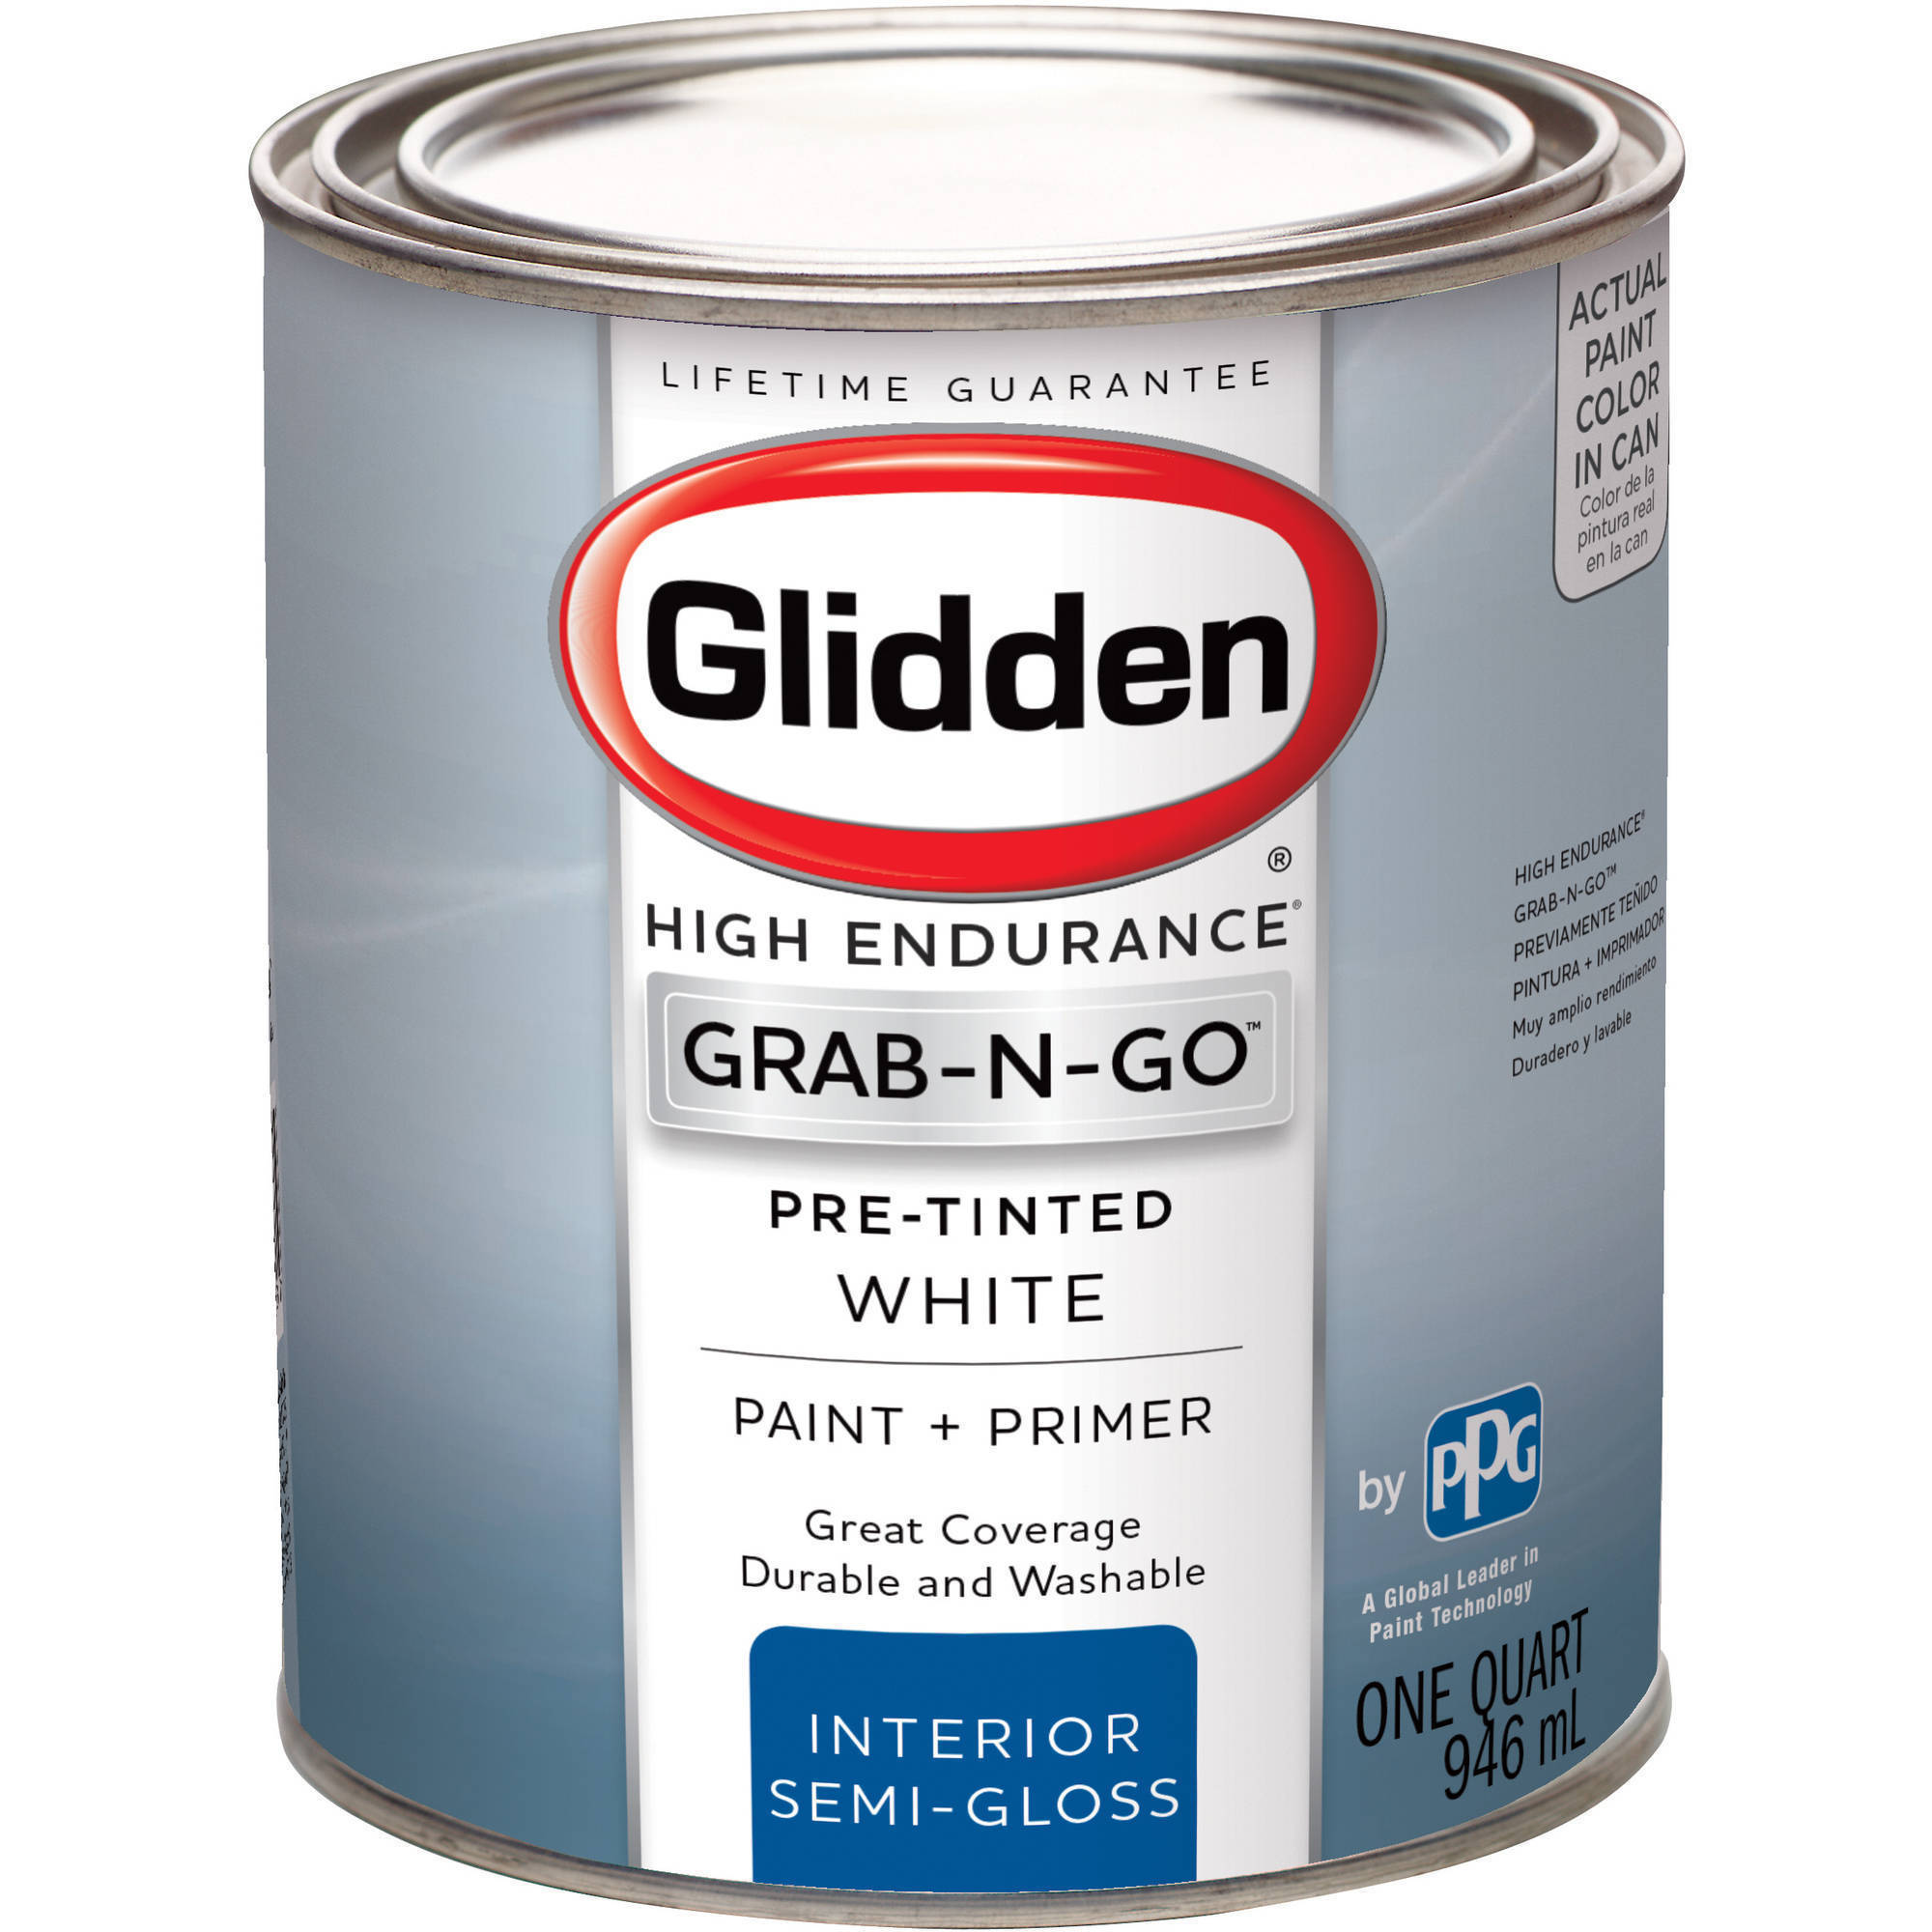 Glidden High Endurance Grab-N-Go, Interior Paint and Primer, Semi-Gloss Finish, White, 1 Quart